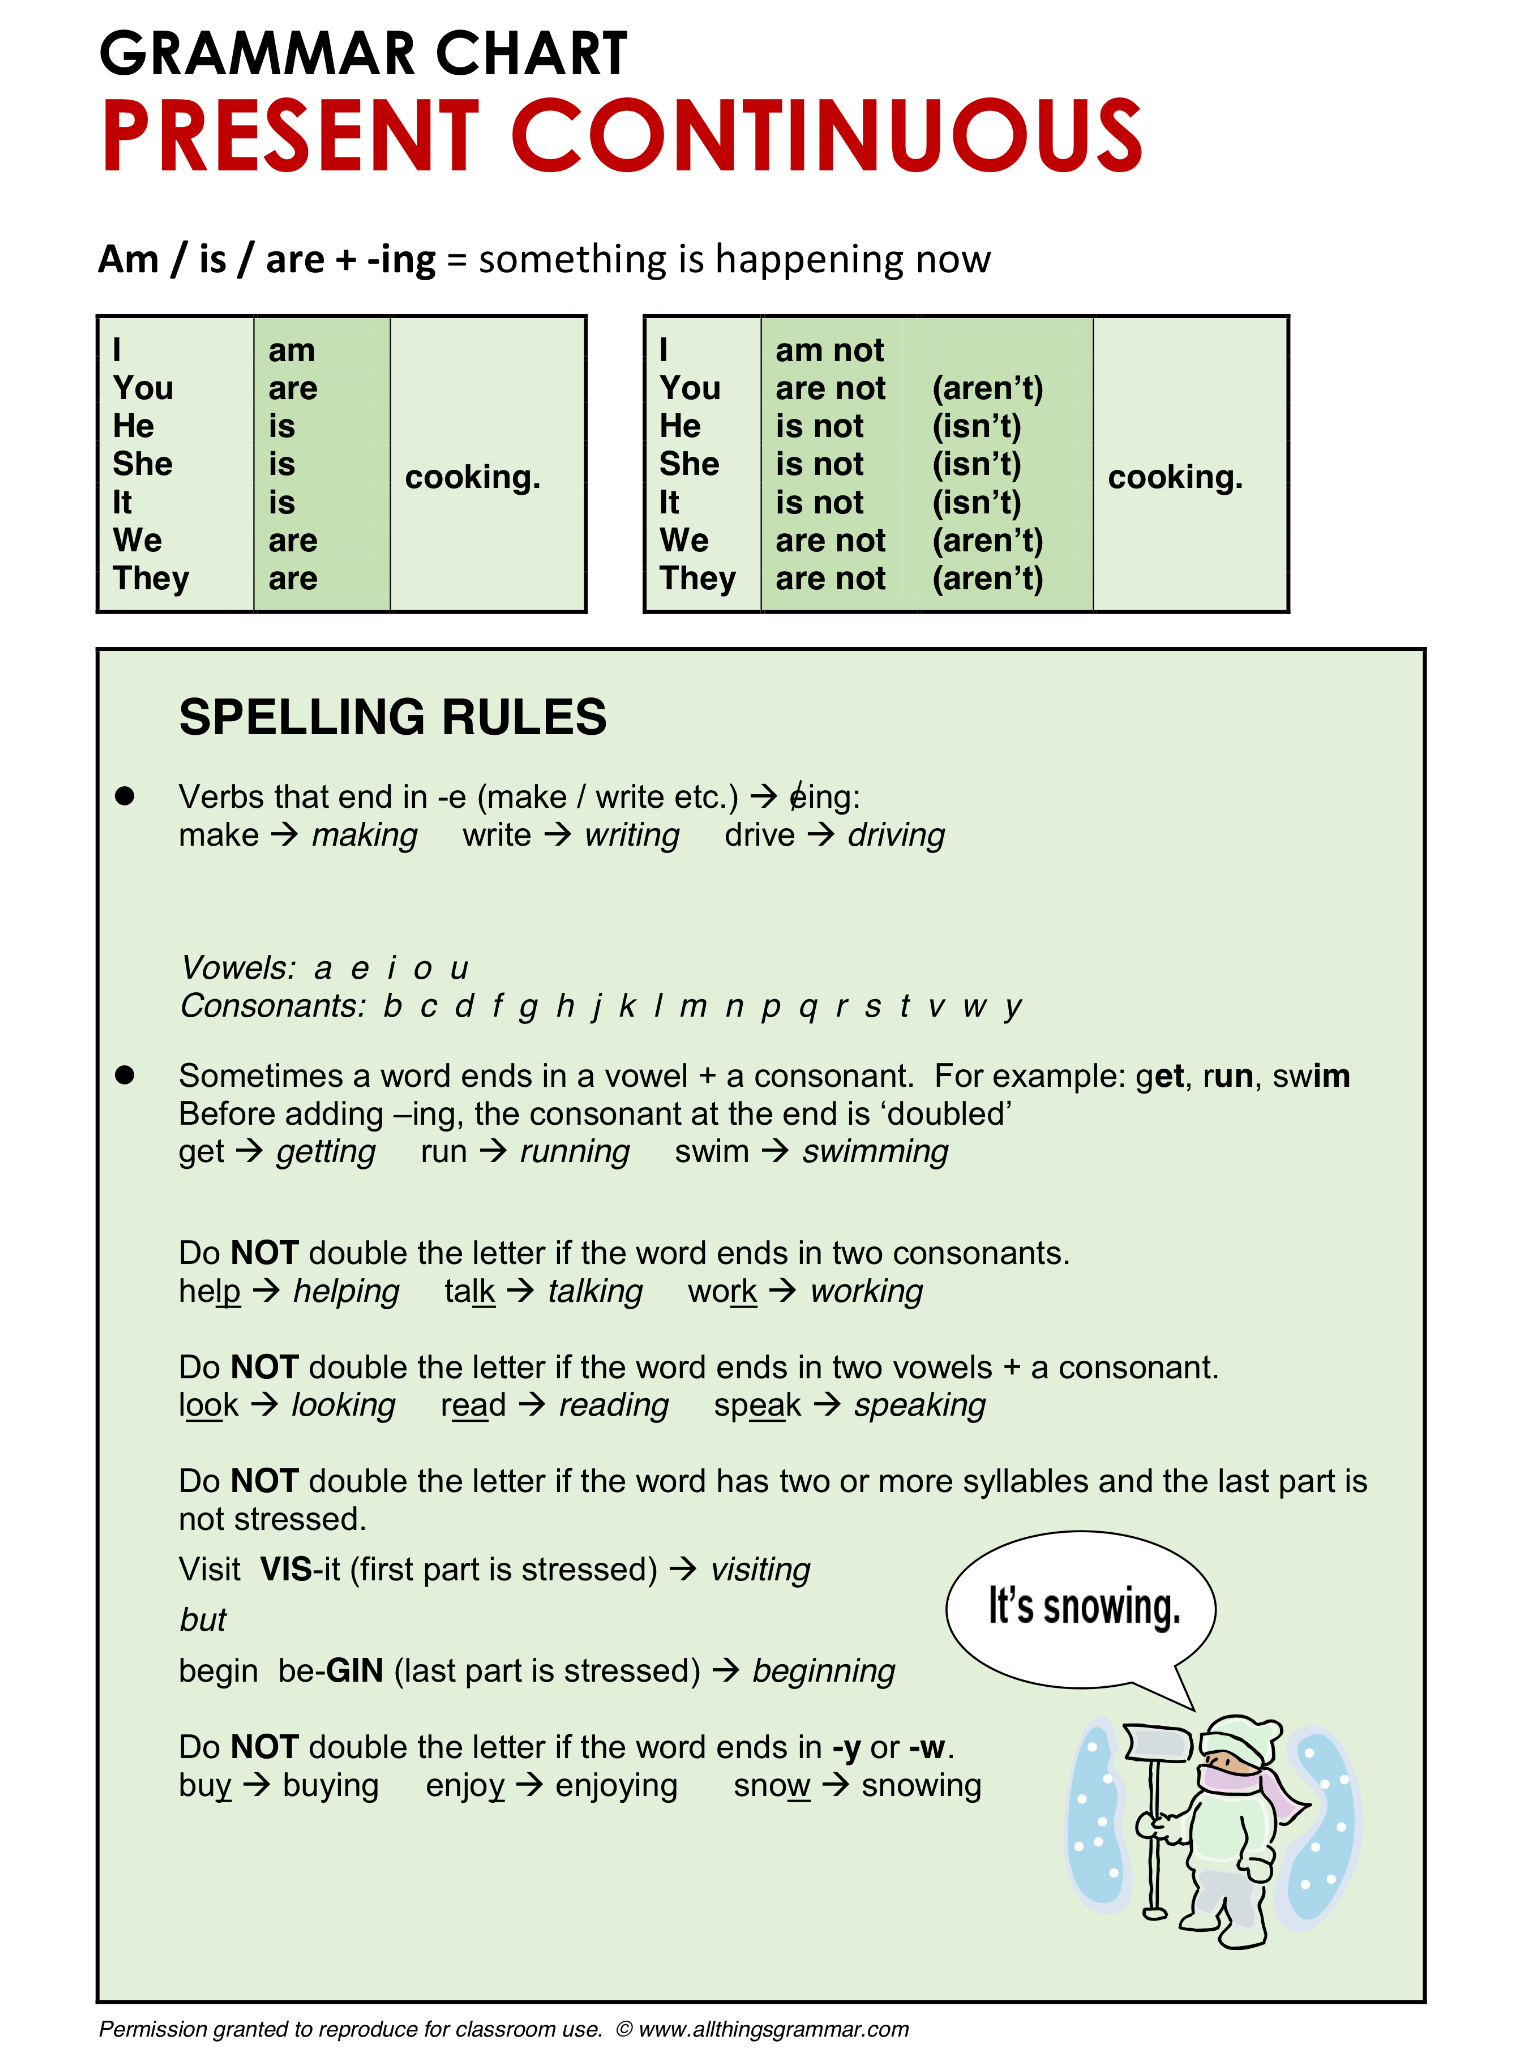 English Grammar Present Continuous Spelling Rules